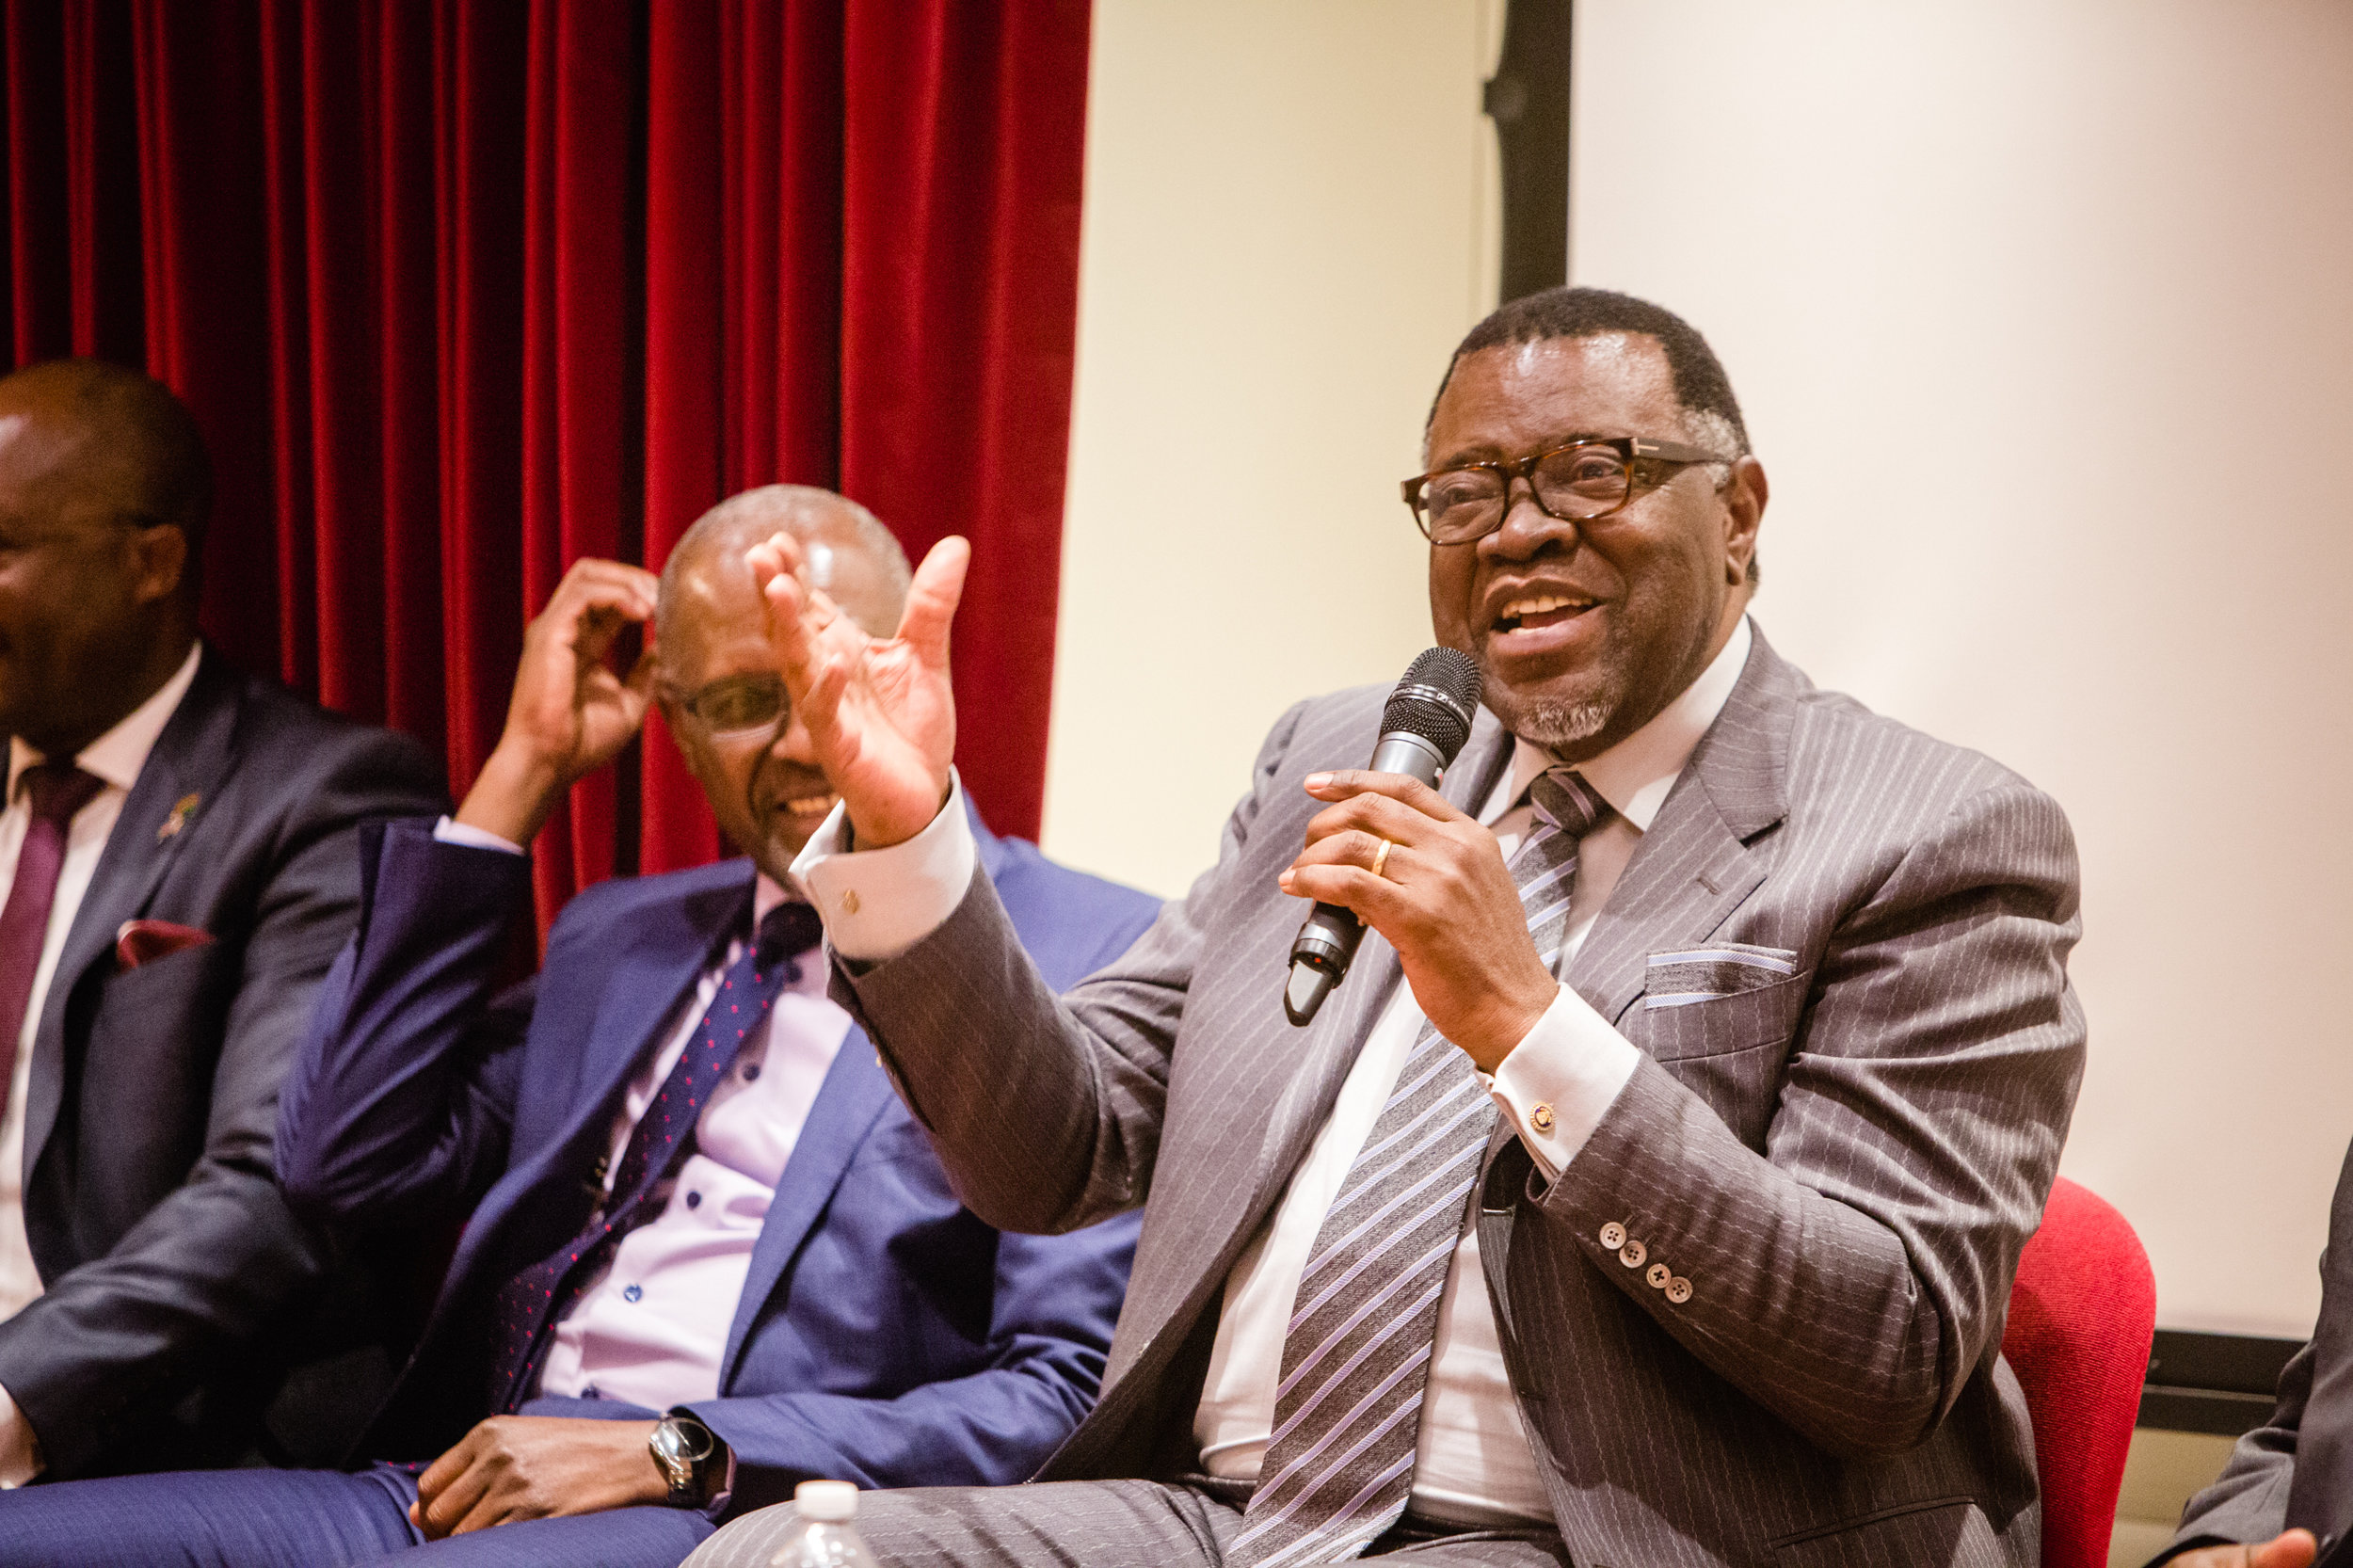 Namibia Commerce and Prosperity Forum with H.E. Dr. Hage G. Geingob, President of the Republic of Namibia